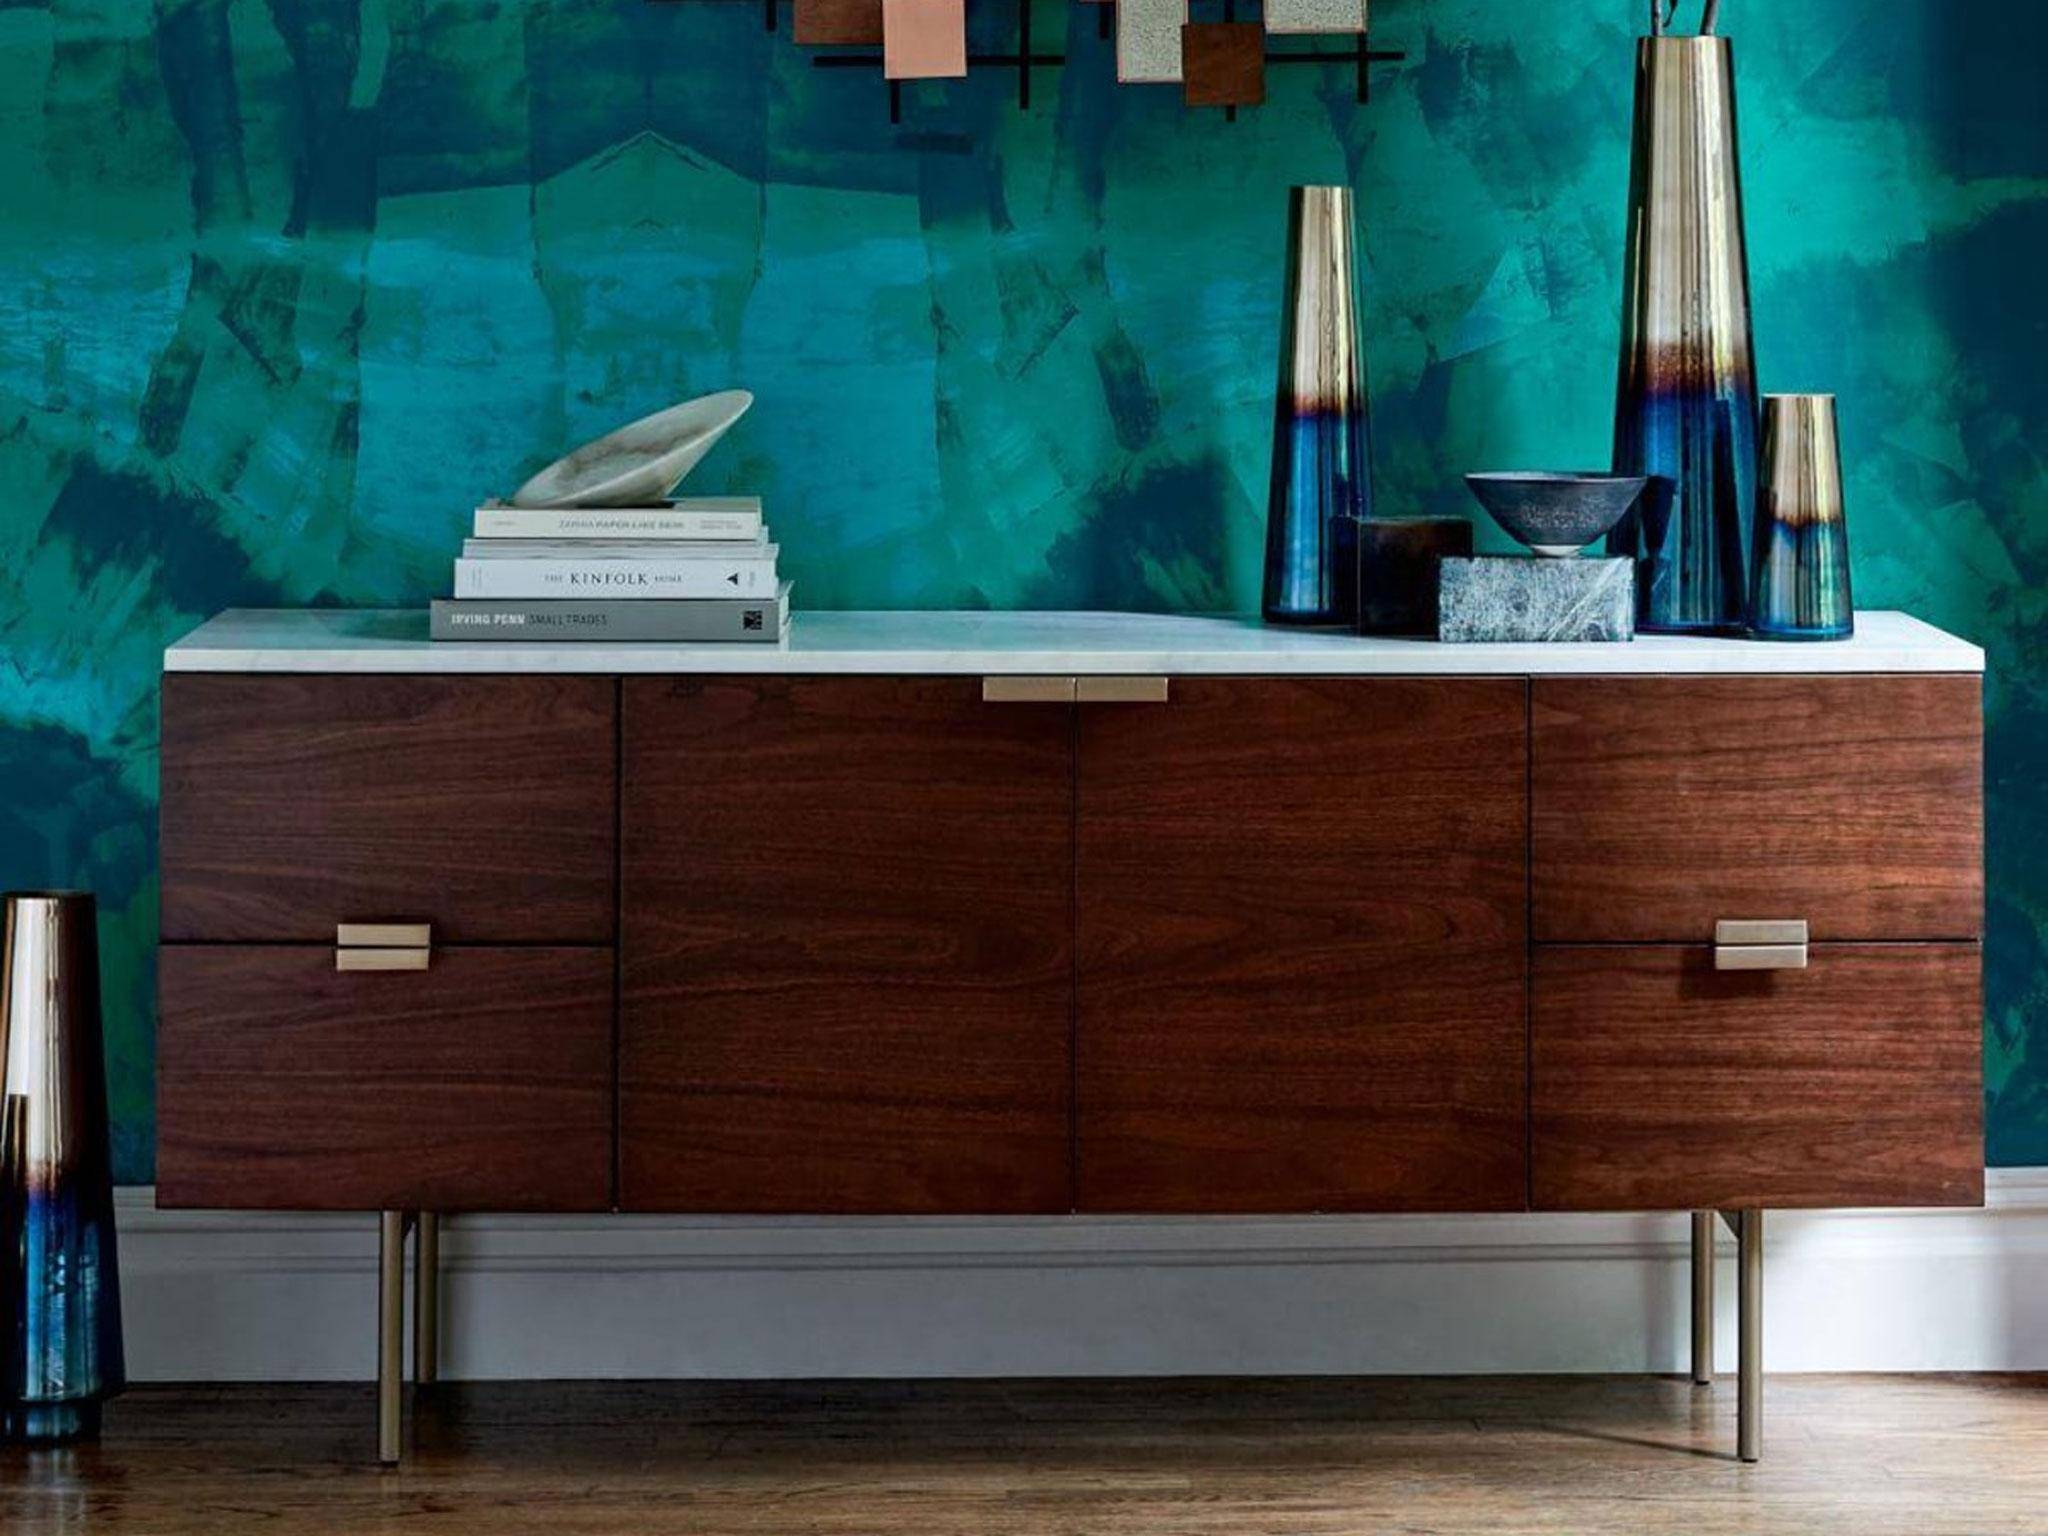 10 Best Sideboards | The Independent Intended For West Elm Sideboards (Gallery 12 of 15)